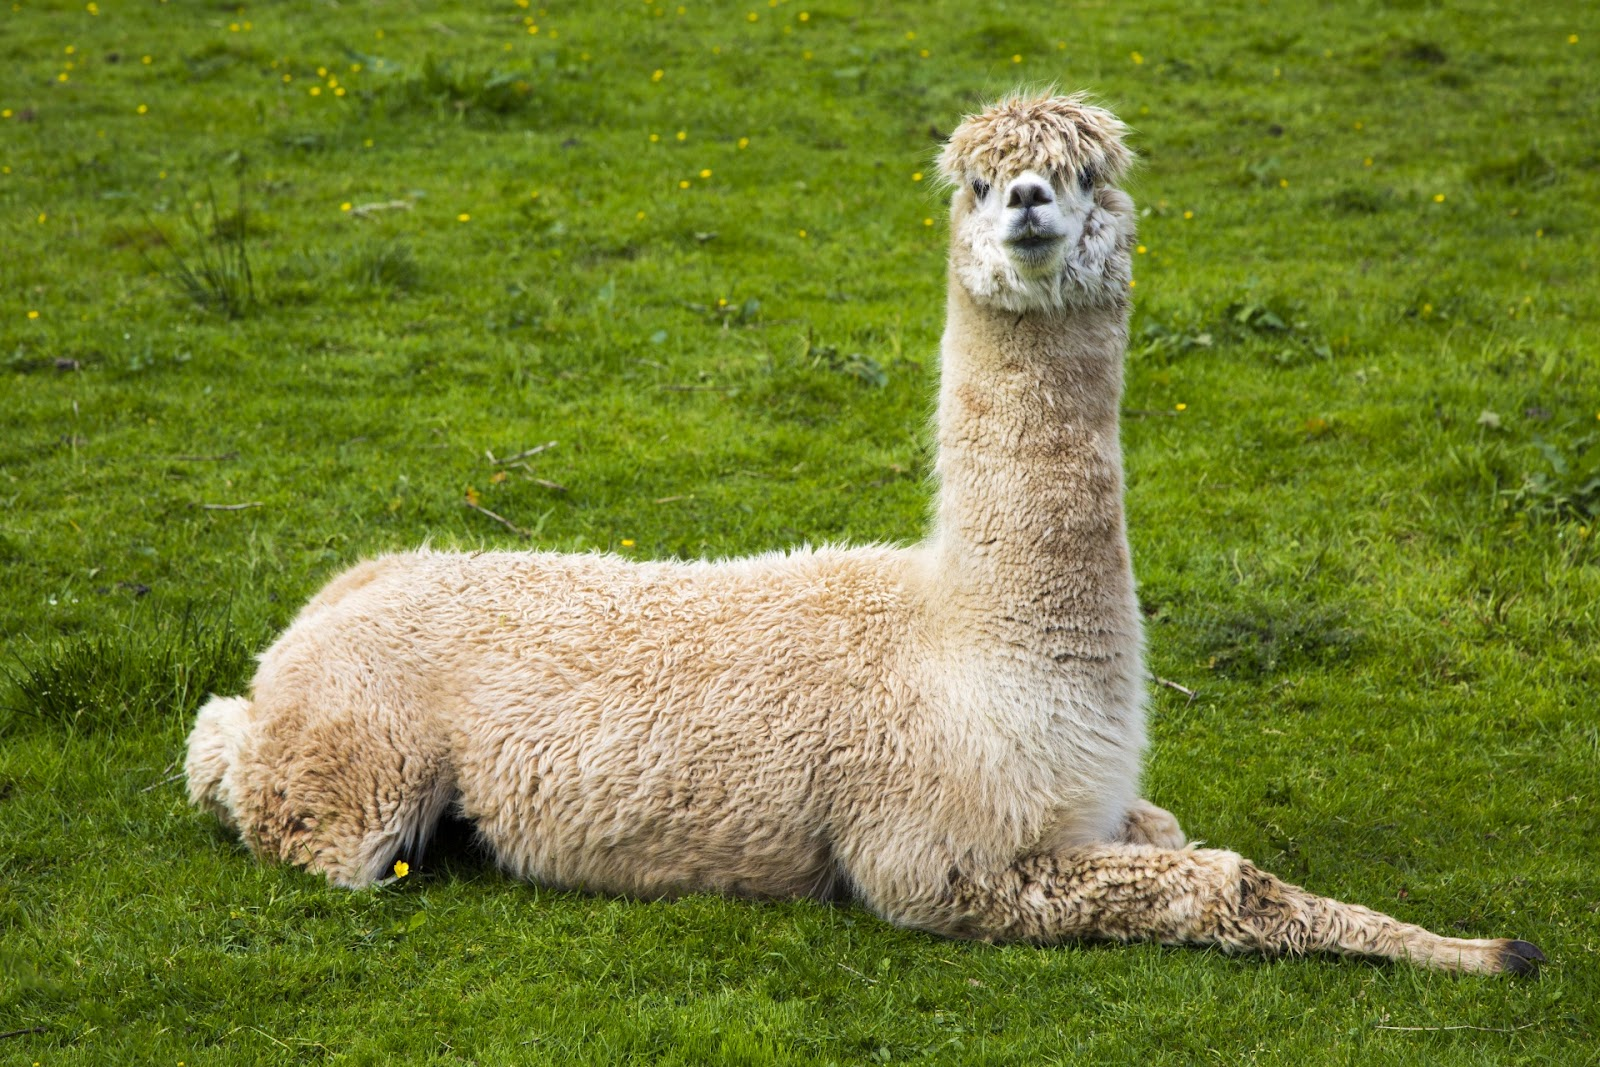 Llama Free Stock Photo - Public Domain Pictures